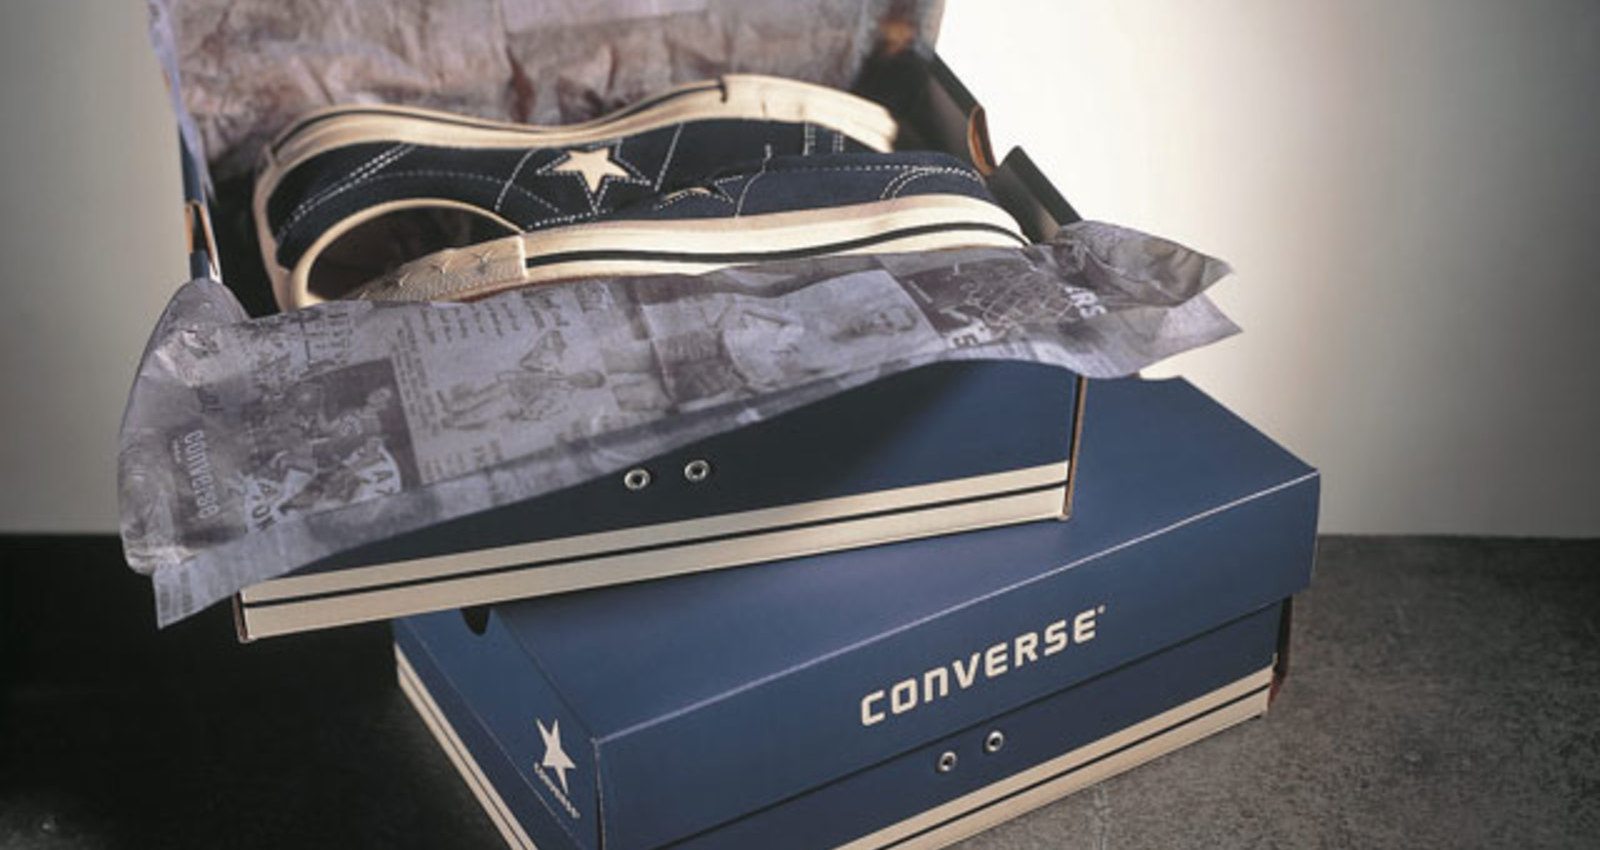 Converse Shoe Box - Black, Converse Shoe Box - Blue, Converse Shoe Box - Tan